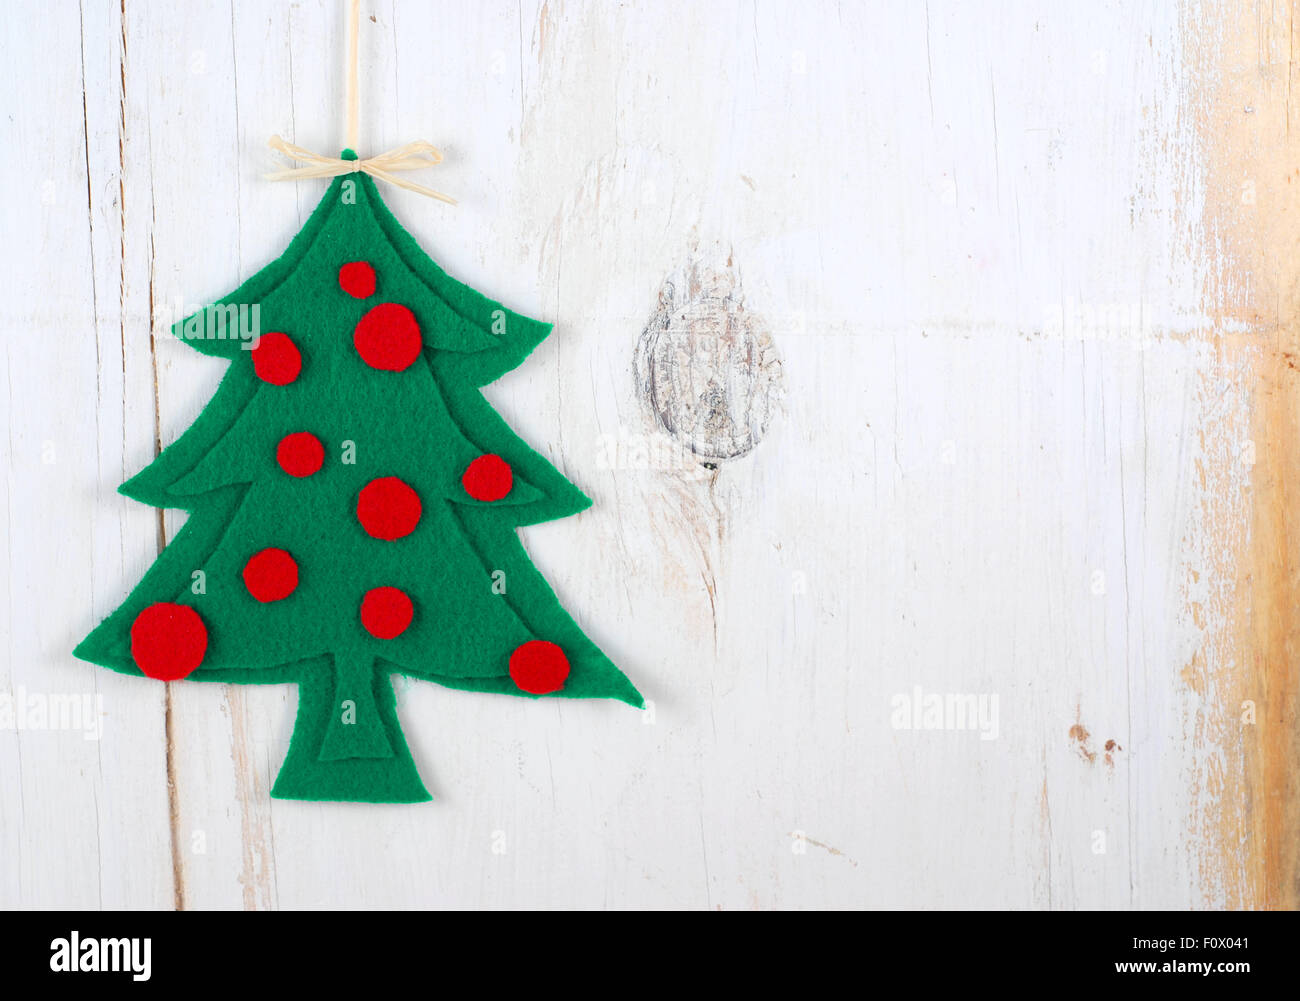 Rustic Christmas Image With Tree Cut Out Of Felt On White Washed Wooden Background